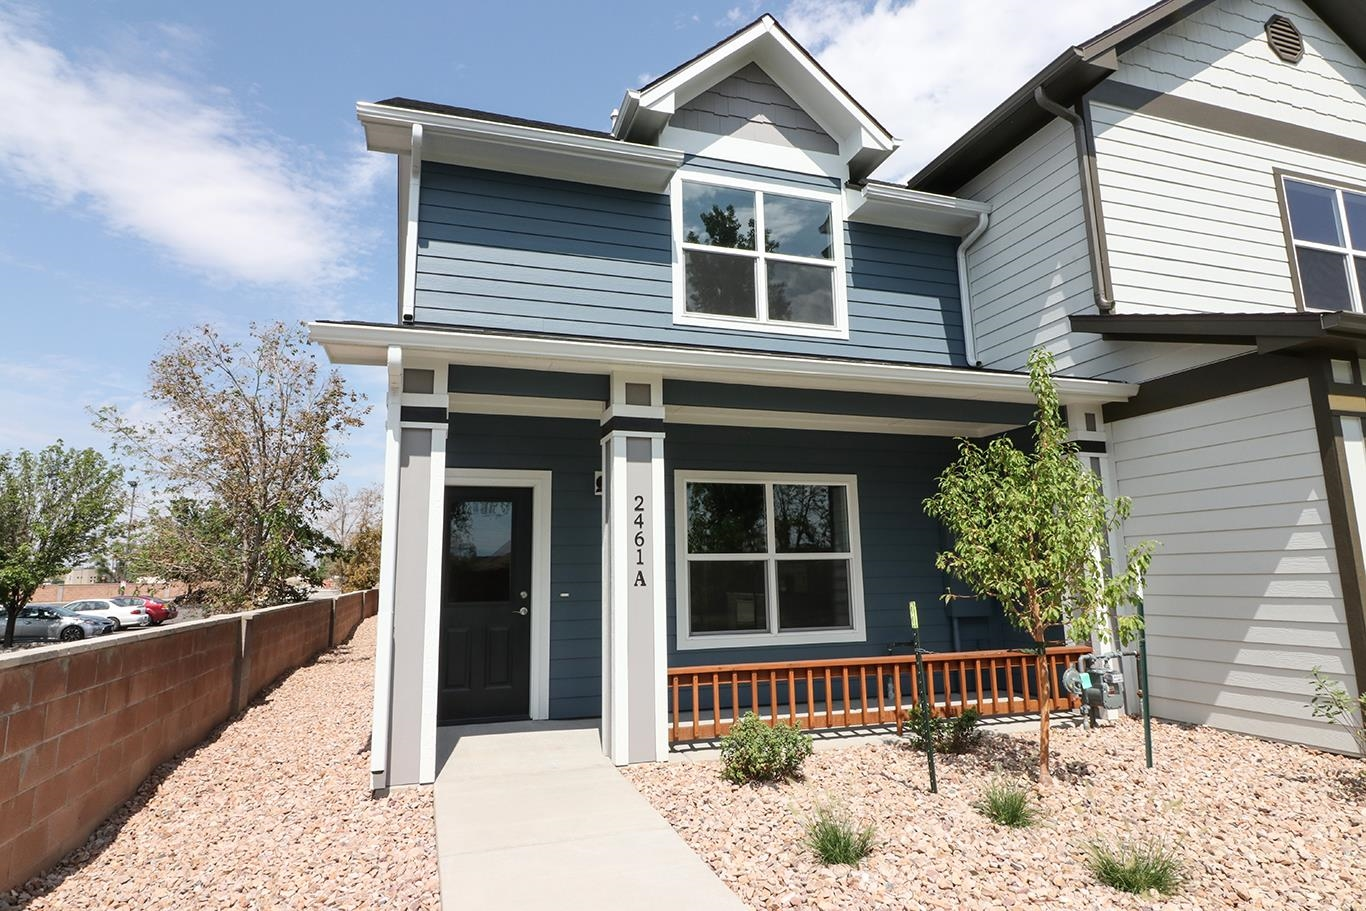 New Construction Townhome in great central location. 2 bed, 2.5 baths, 1 car detached garage & 1232 sq ft. Nice finishes which include granite counters, stainless steel appliances, luxury vinyl tile flooring, on demand hot water & more. Don't miss out on this great unit!!